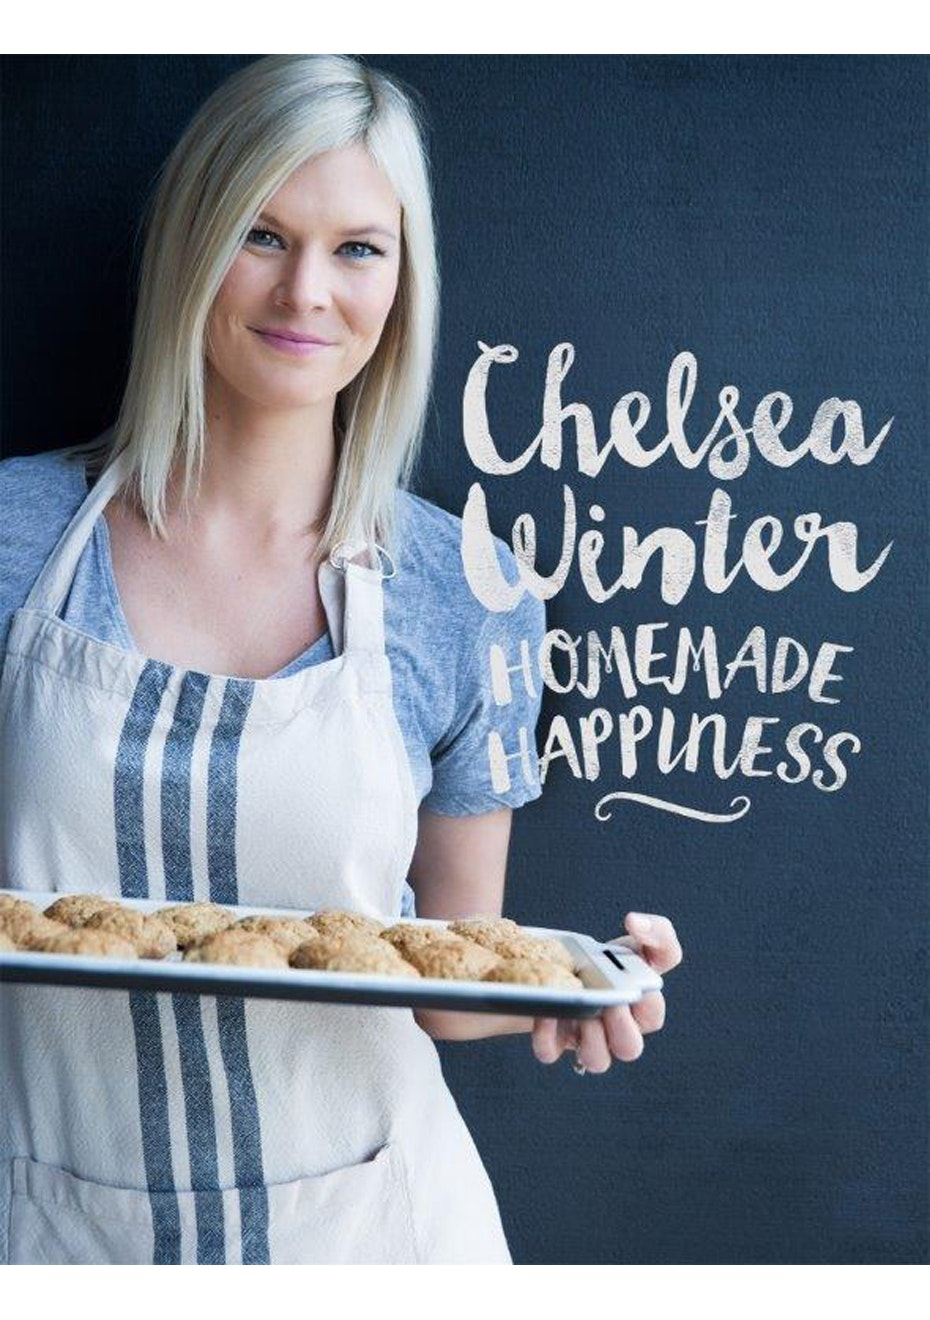 Homemade Happiness, by Chelsea Winter